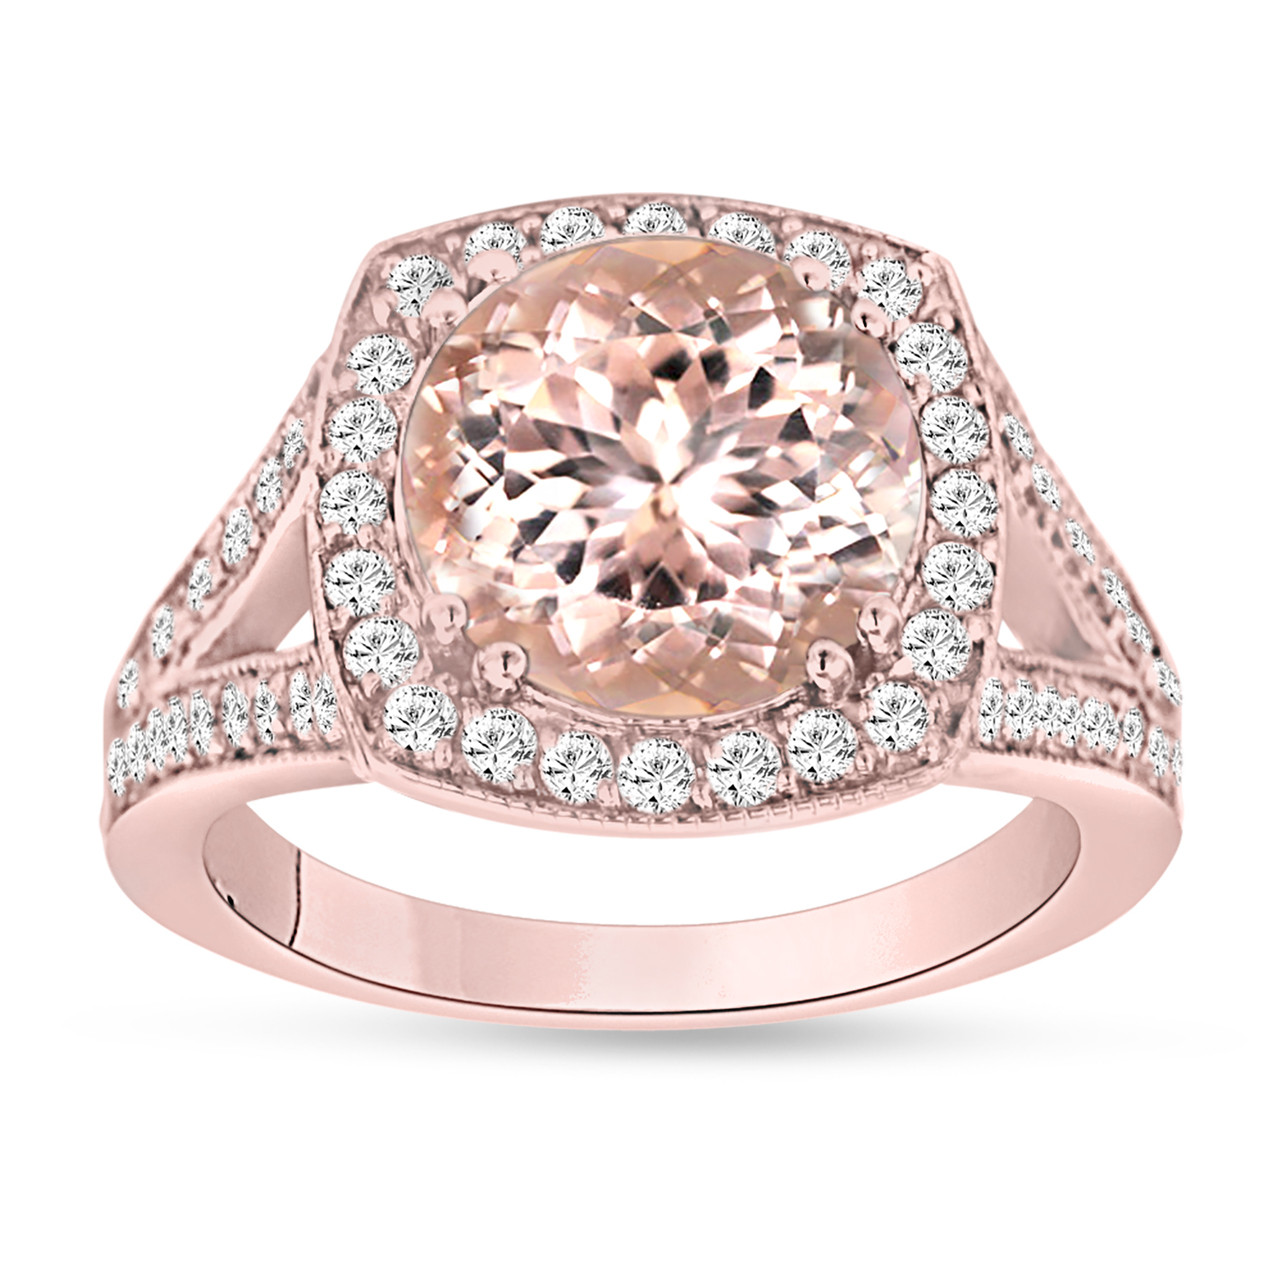 a65002ae82ba3 Pink Peach Morganite Engagement Ring 14K Rose Gold 3.00 Carat Halo Pave  Handmade Certified Huge